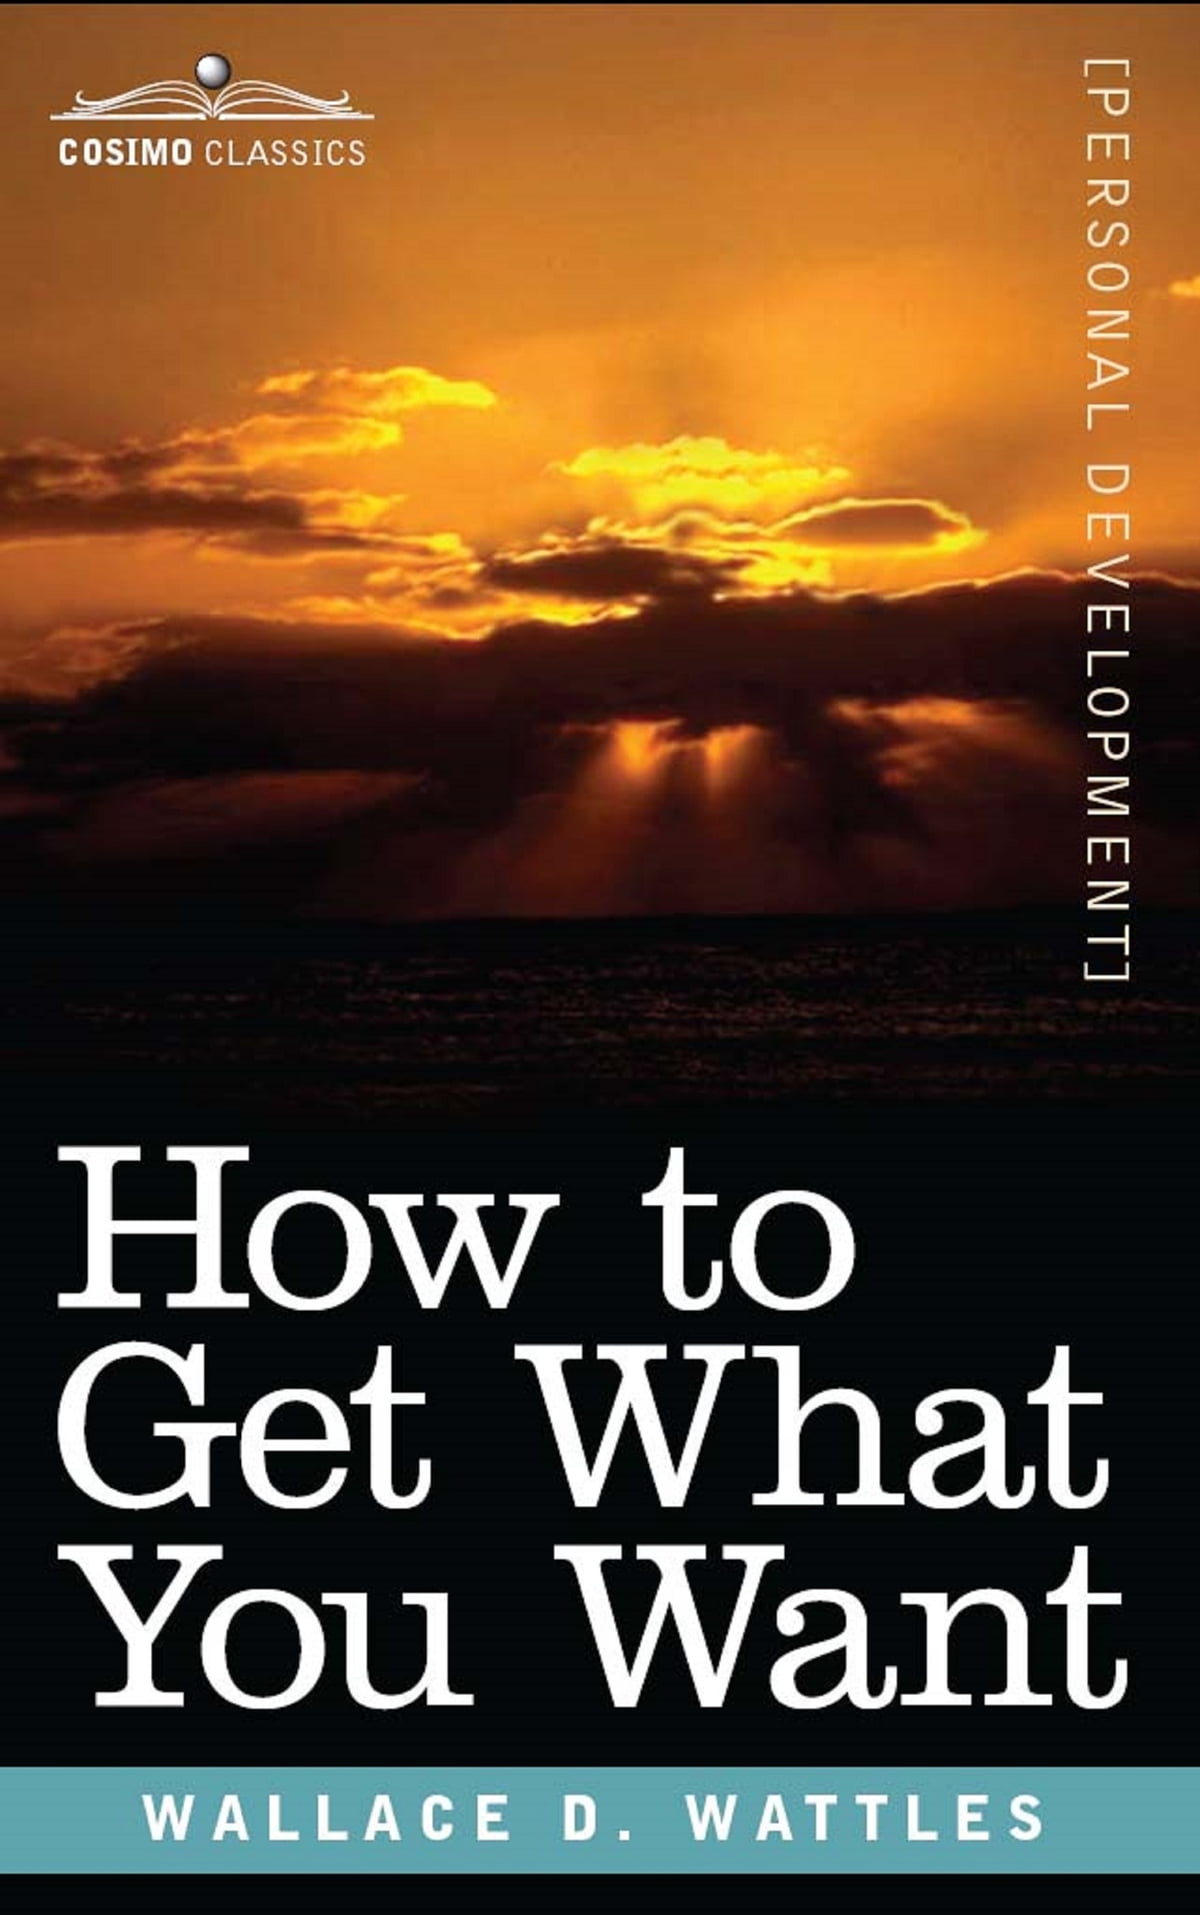 wallace wattles how to get what you want